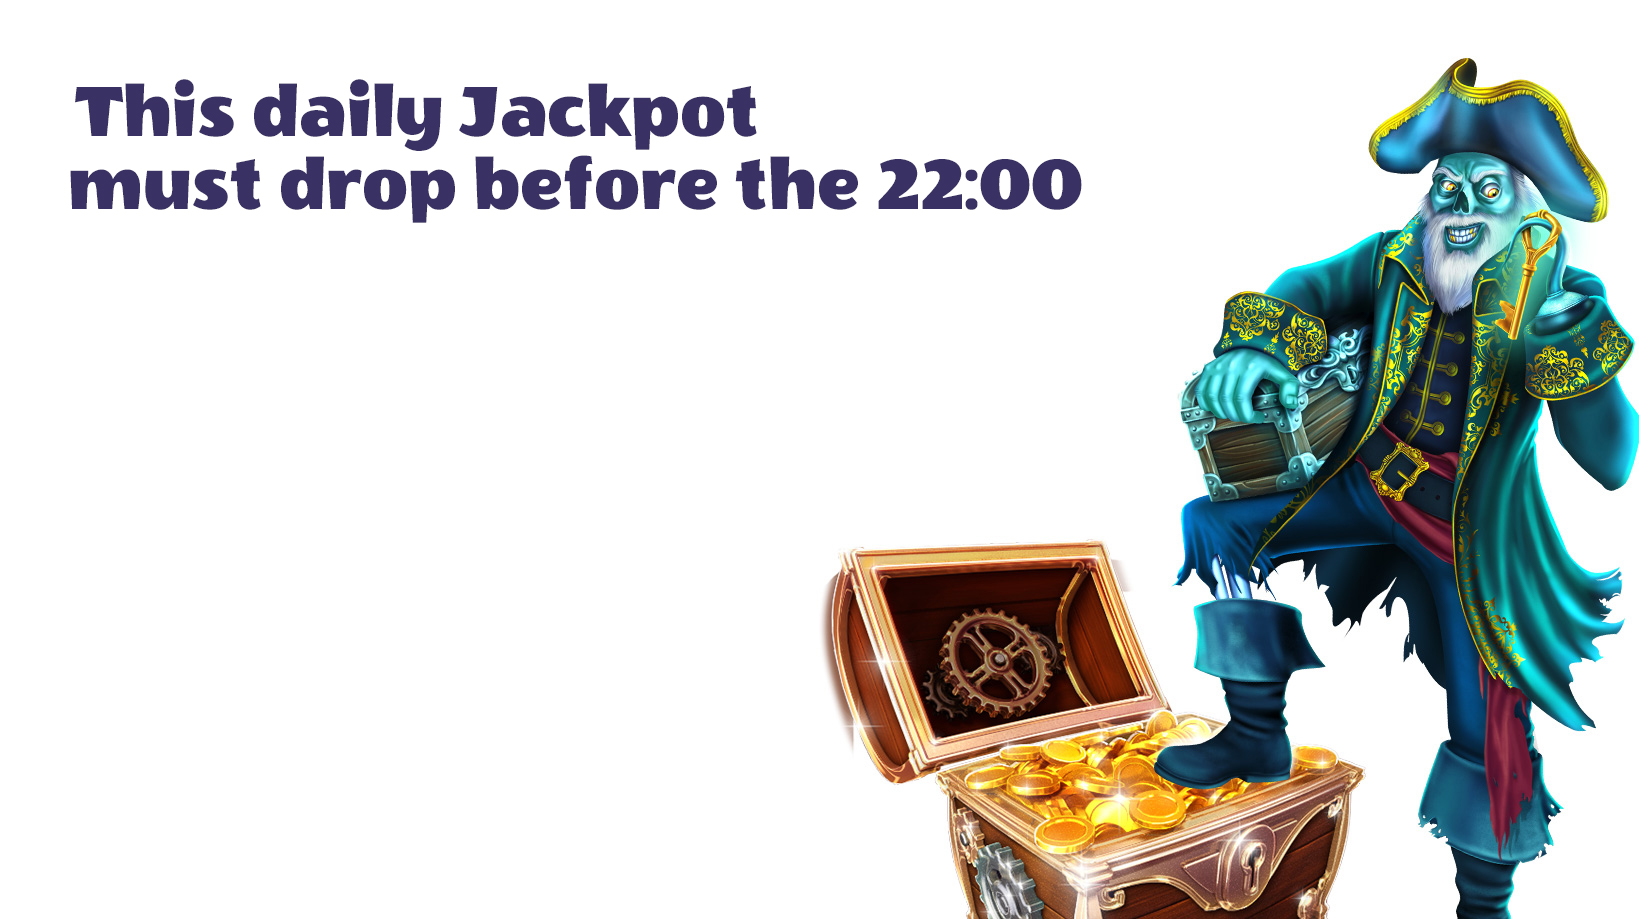 Red Tiger Jackpots